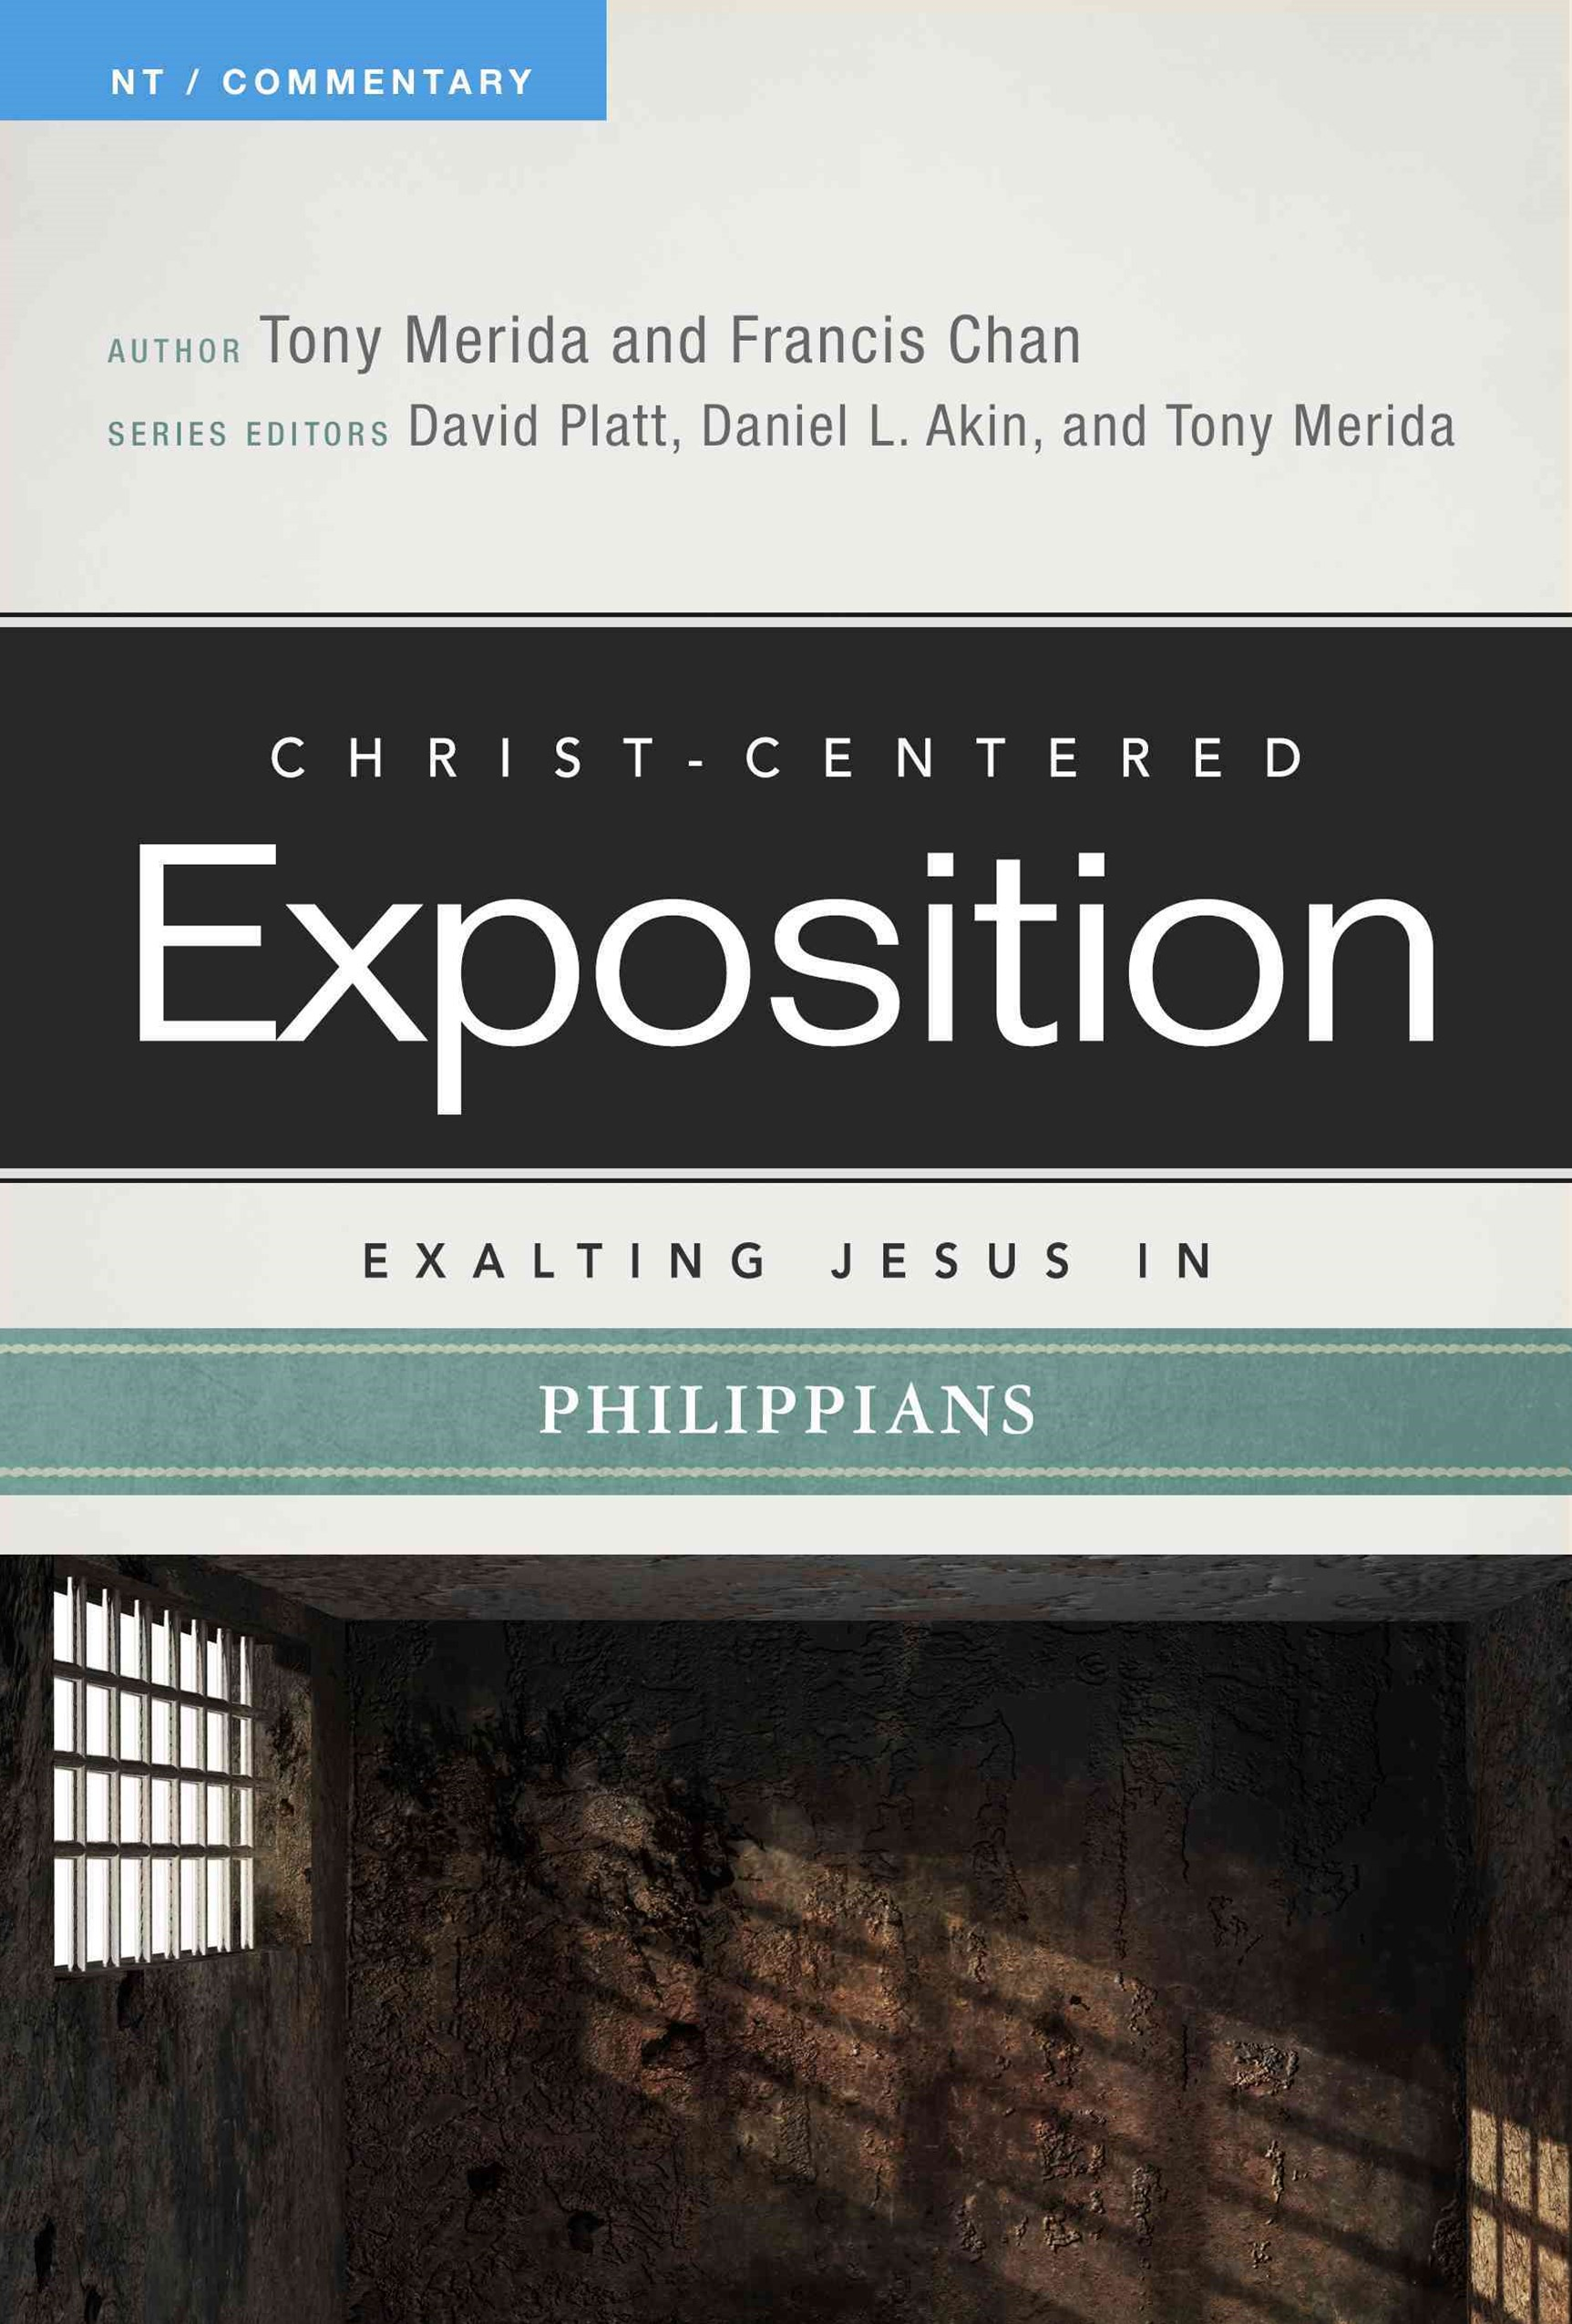 Christ-Centered Exposition